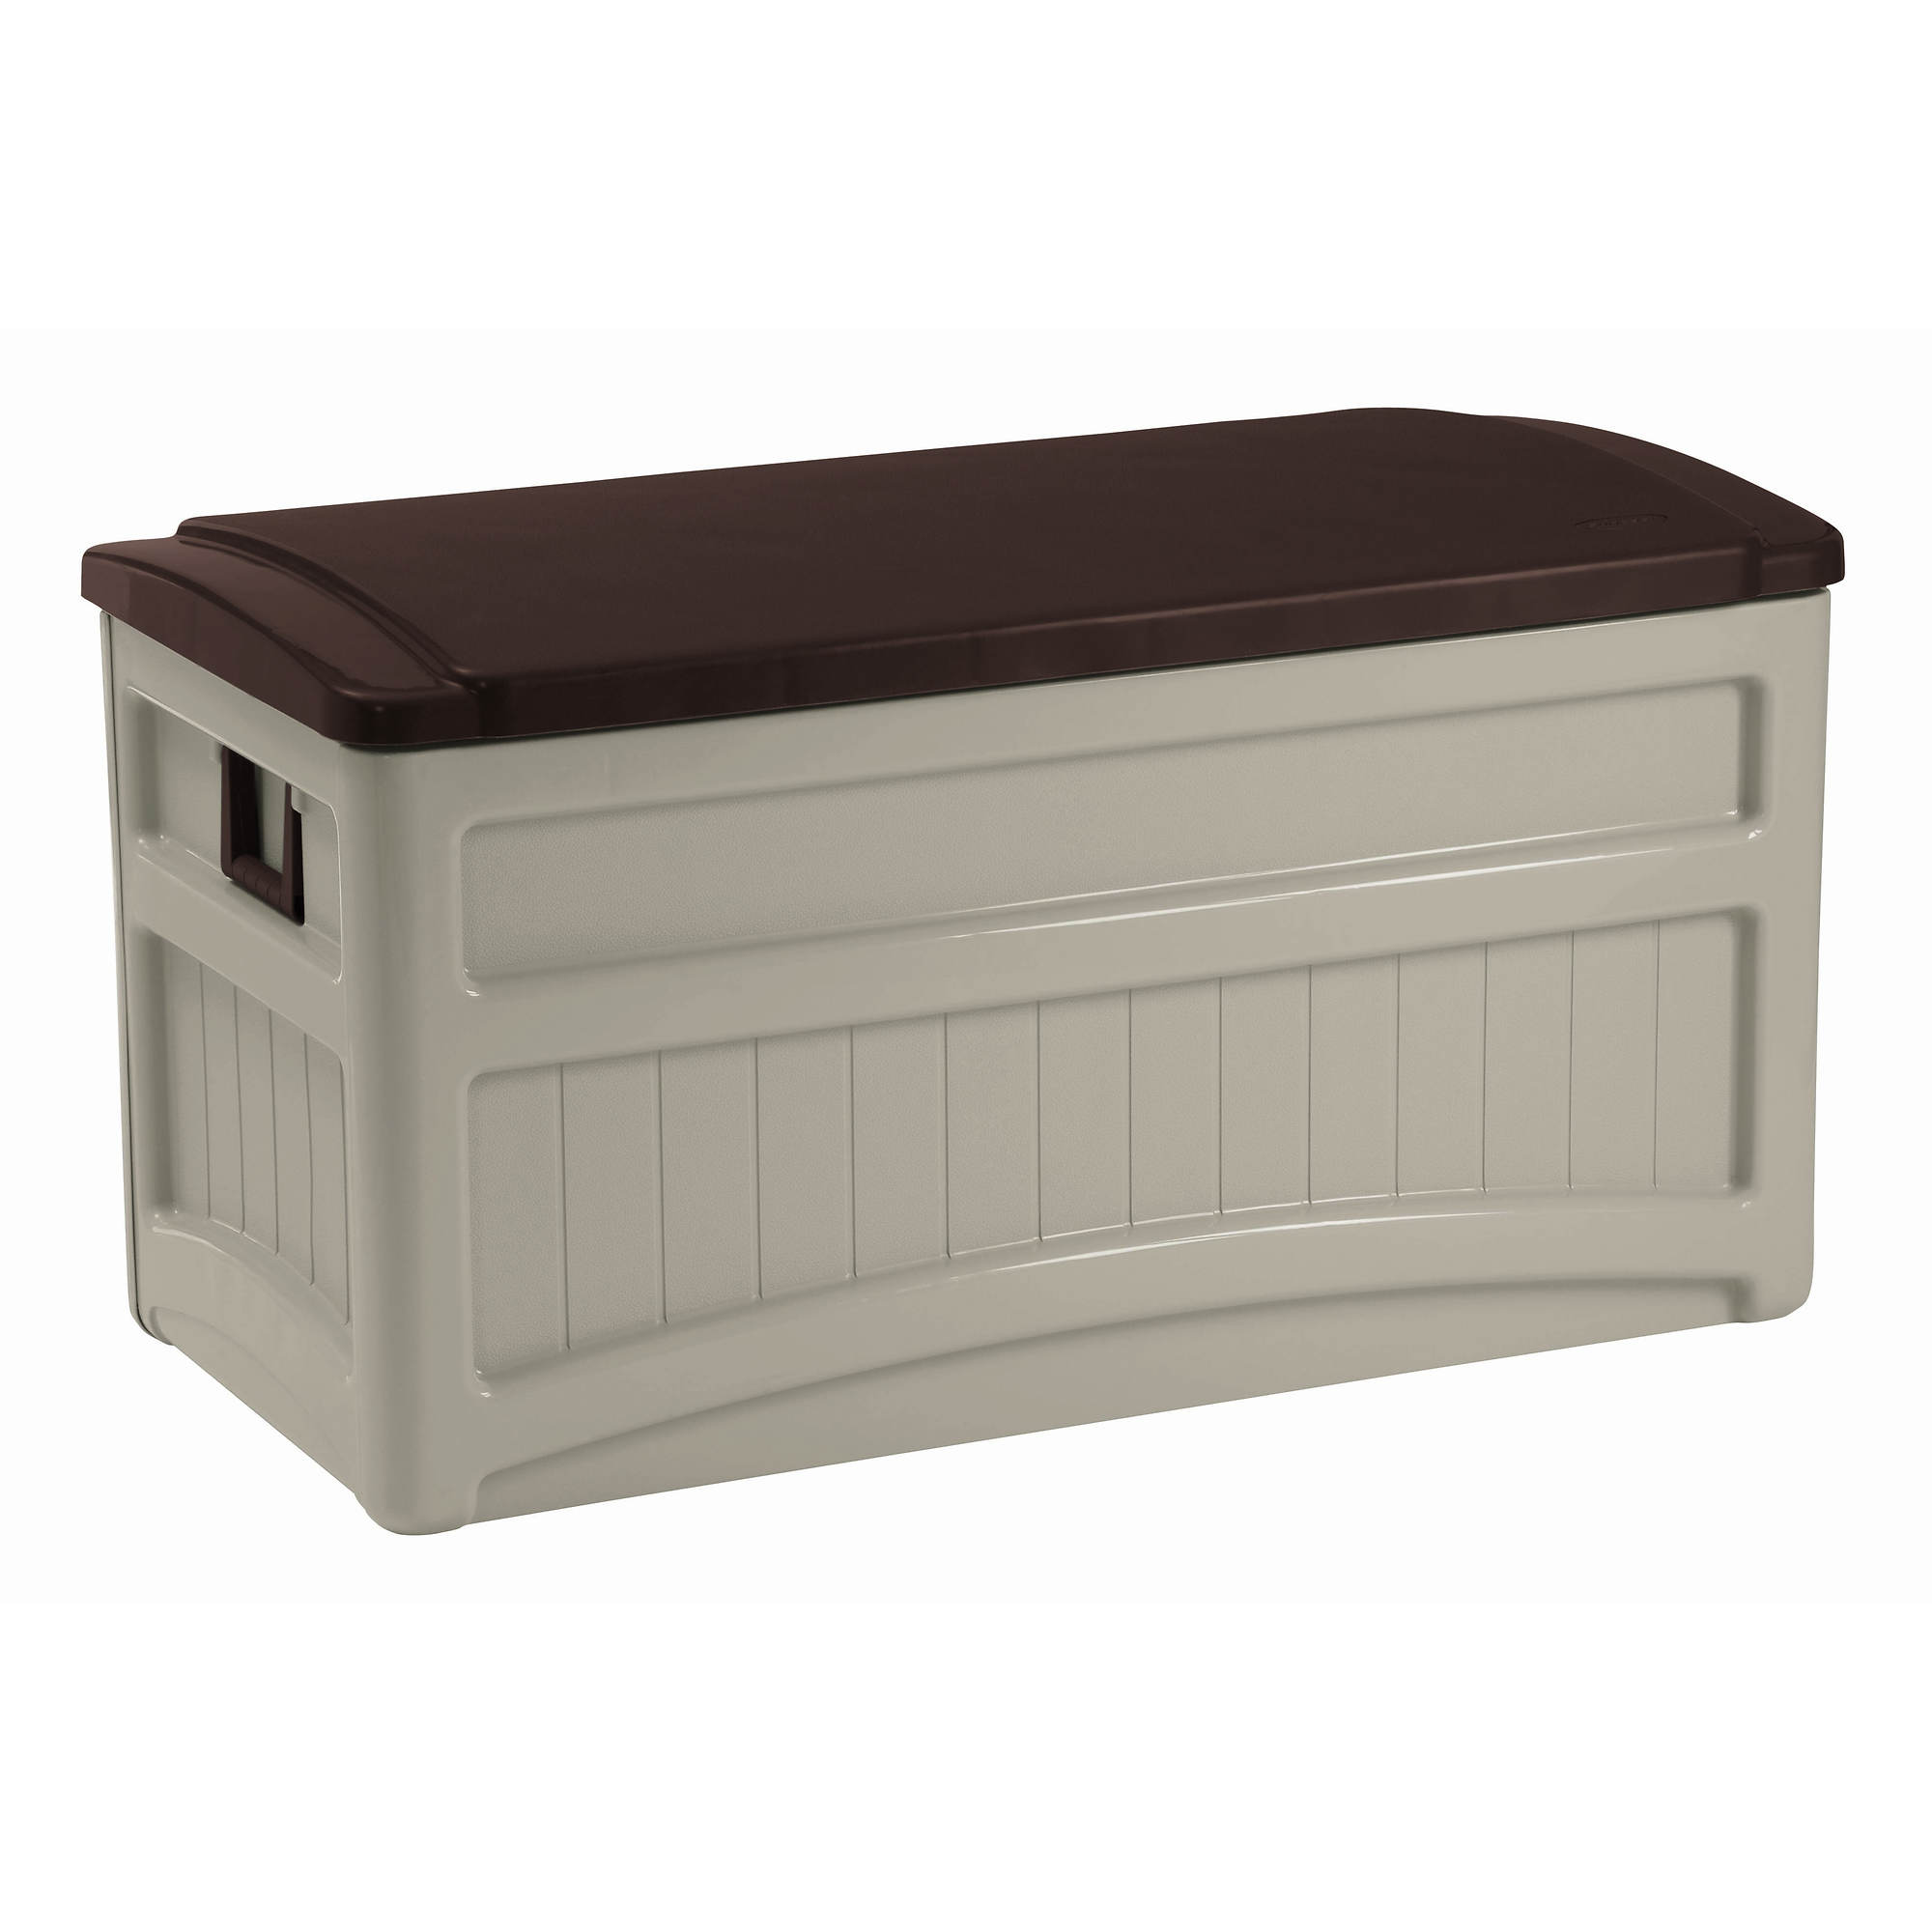 outdoor patio box of marvellous for deck storage bench lovely with luxury cushion cushions